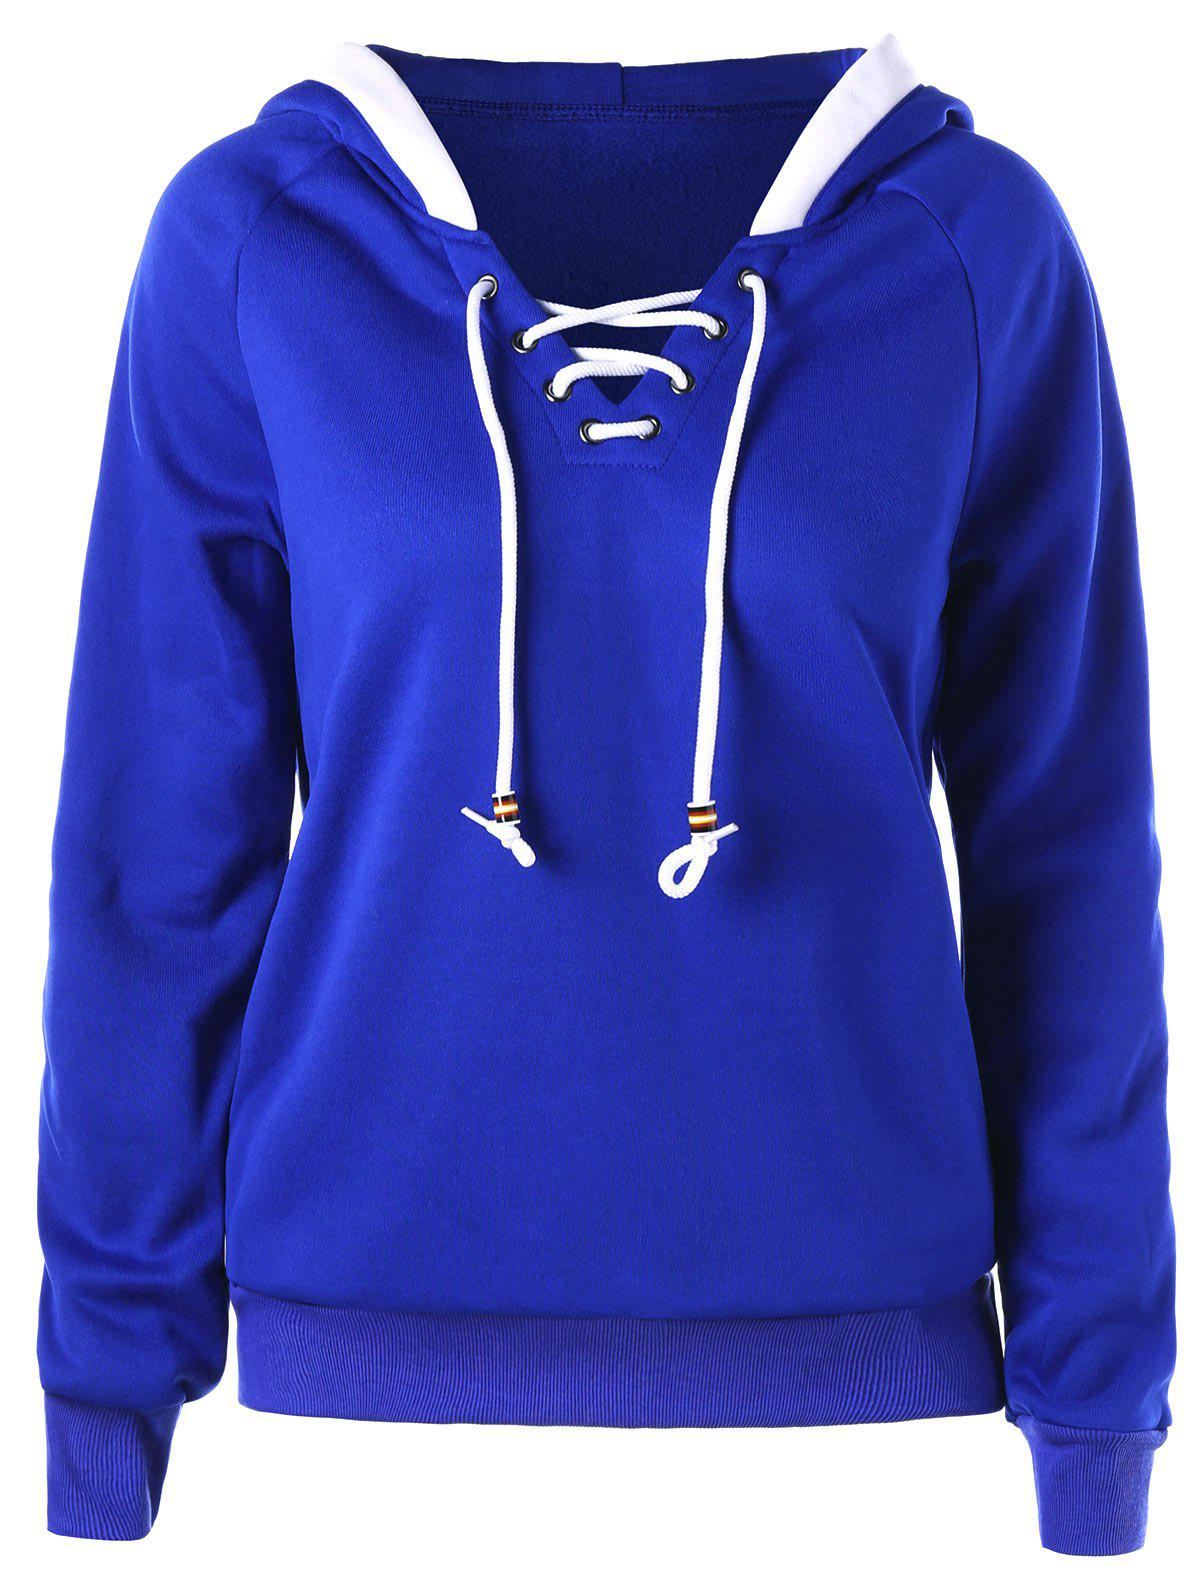 Raglan Sleeve Lace Up HoodieWOMEN<br><br>Size: M; Color: BLUE; Material: Polyester,Spandex; Shirt Length: Regular; Sleeve Length: Full; Style: Casual; Pattern Style: Solid; Season: Fall,Spring; Weight: 0.4100kg; Package Contents: 1 x Hoodie;